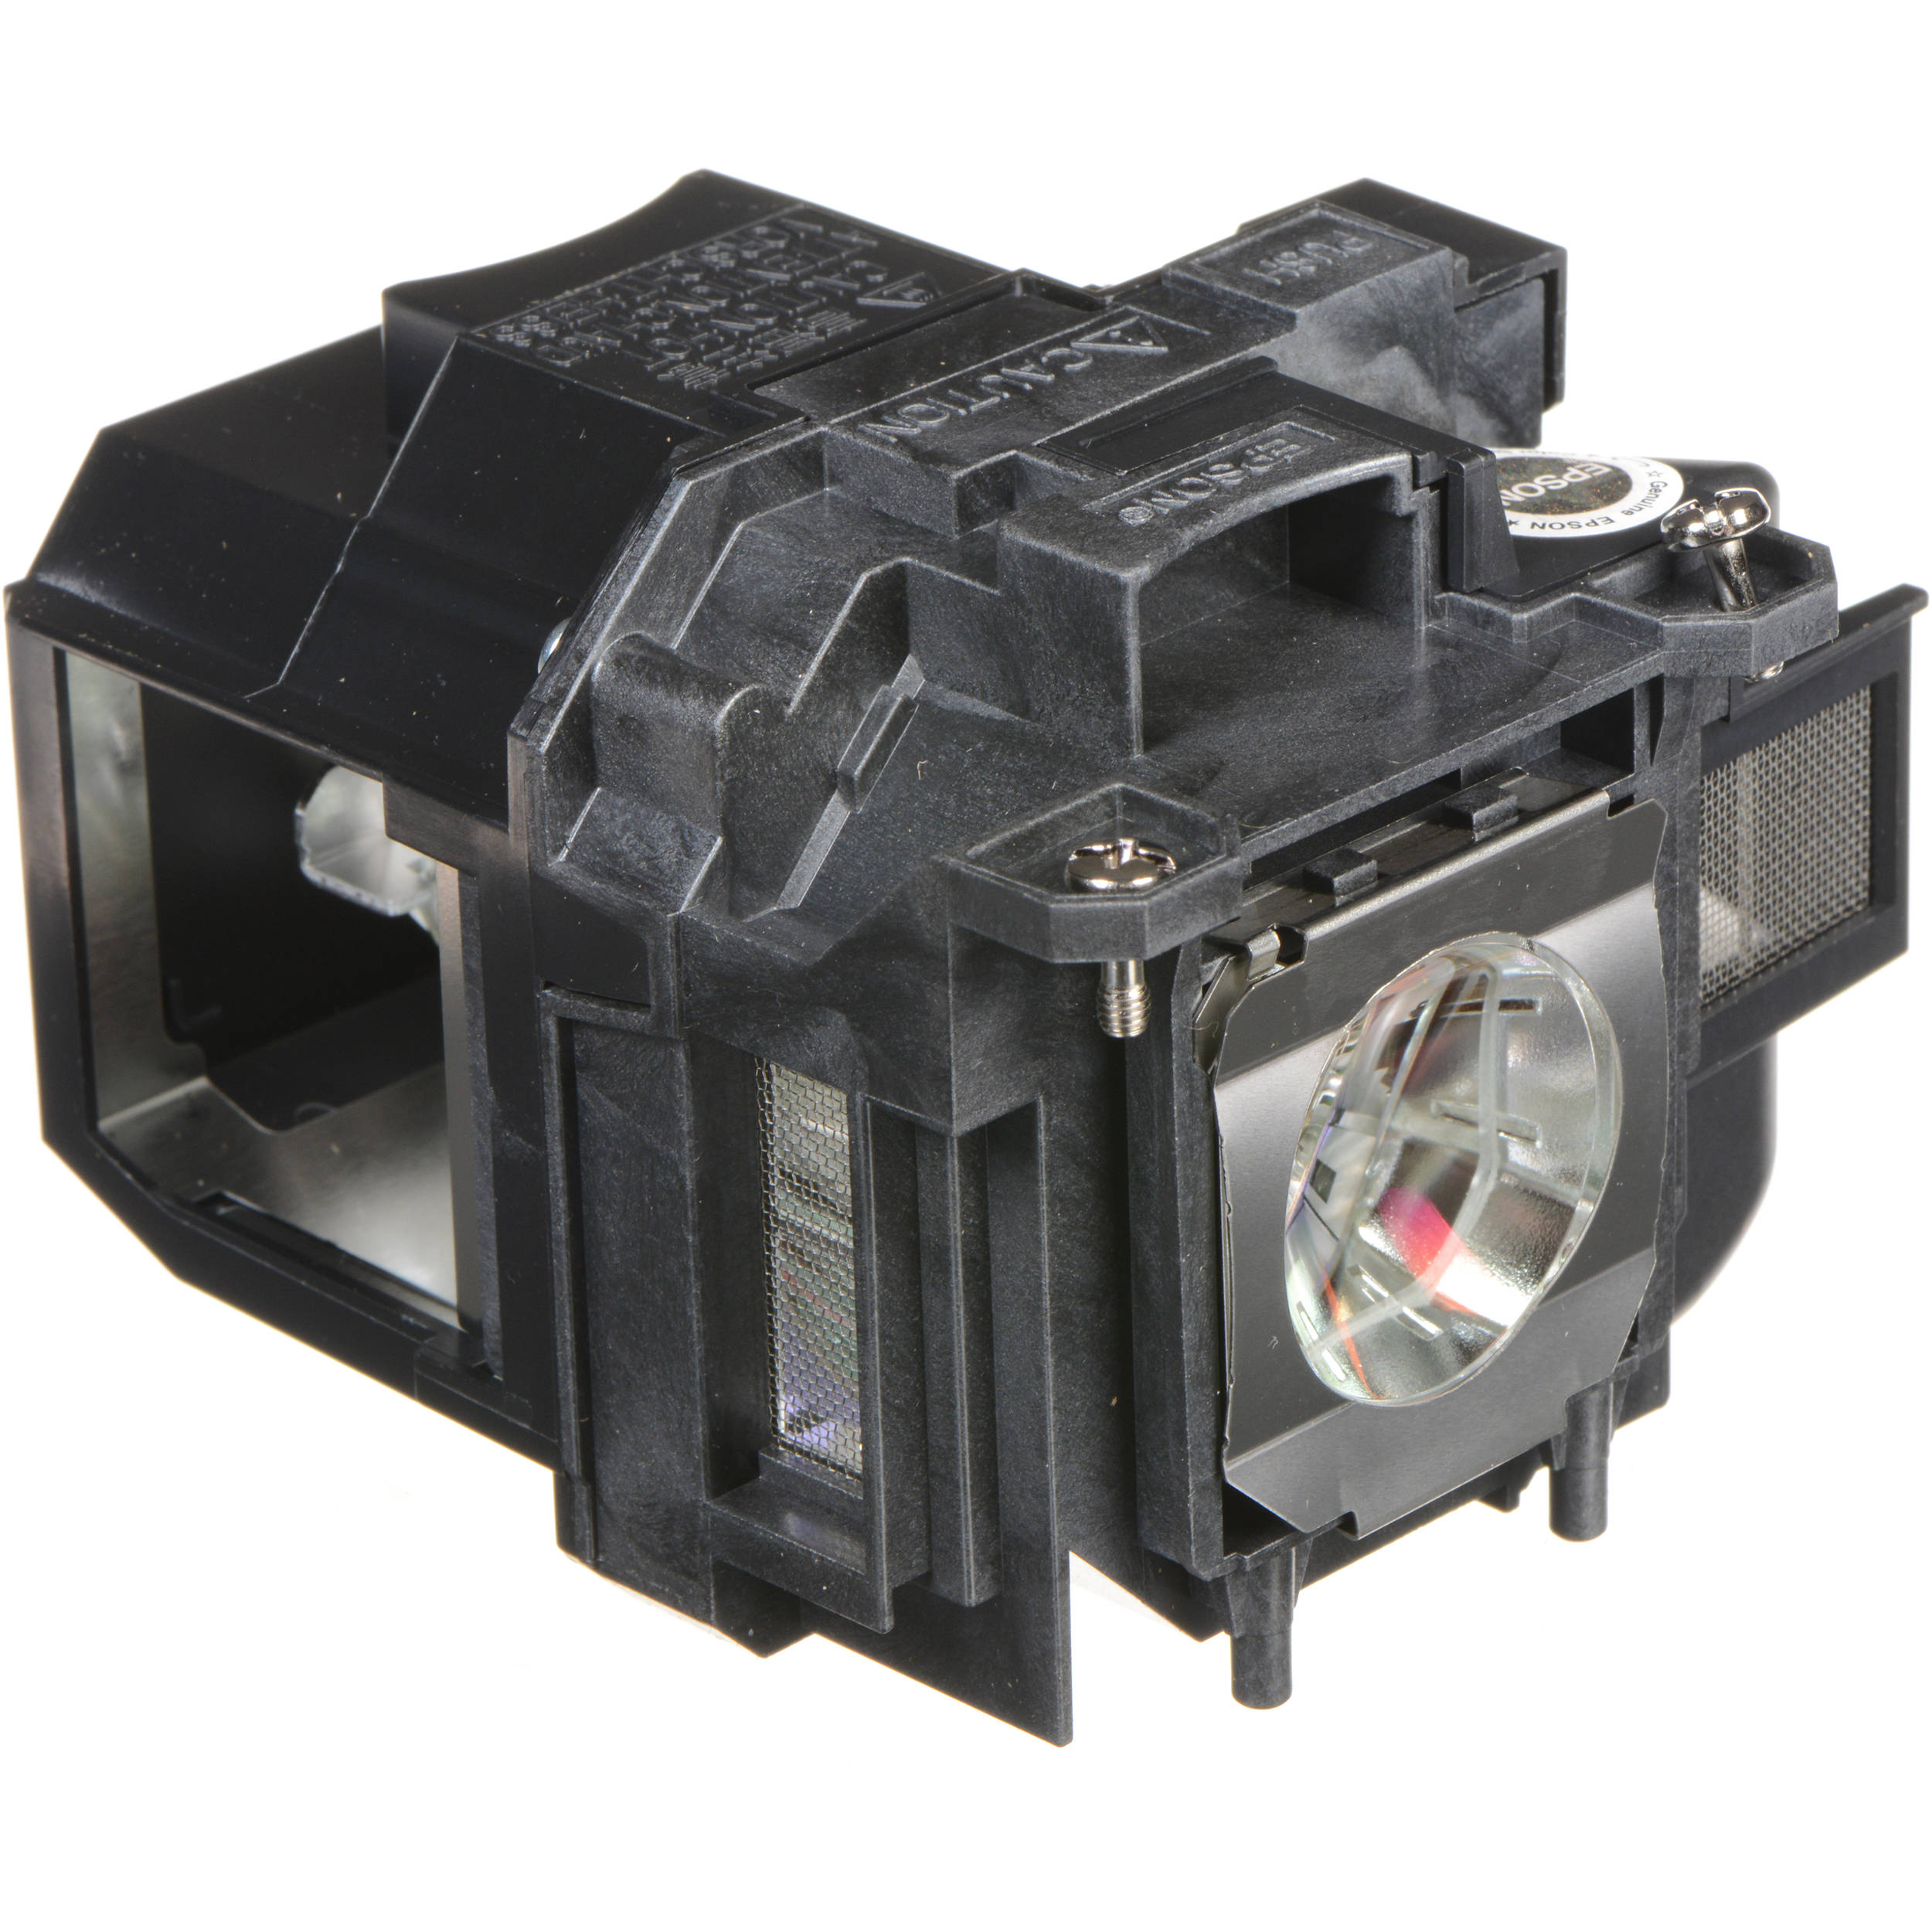 Epson ELPLP88 Replacement Projector Lamp / Bulb V13H010L88 B&H